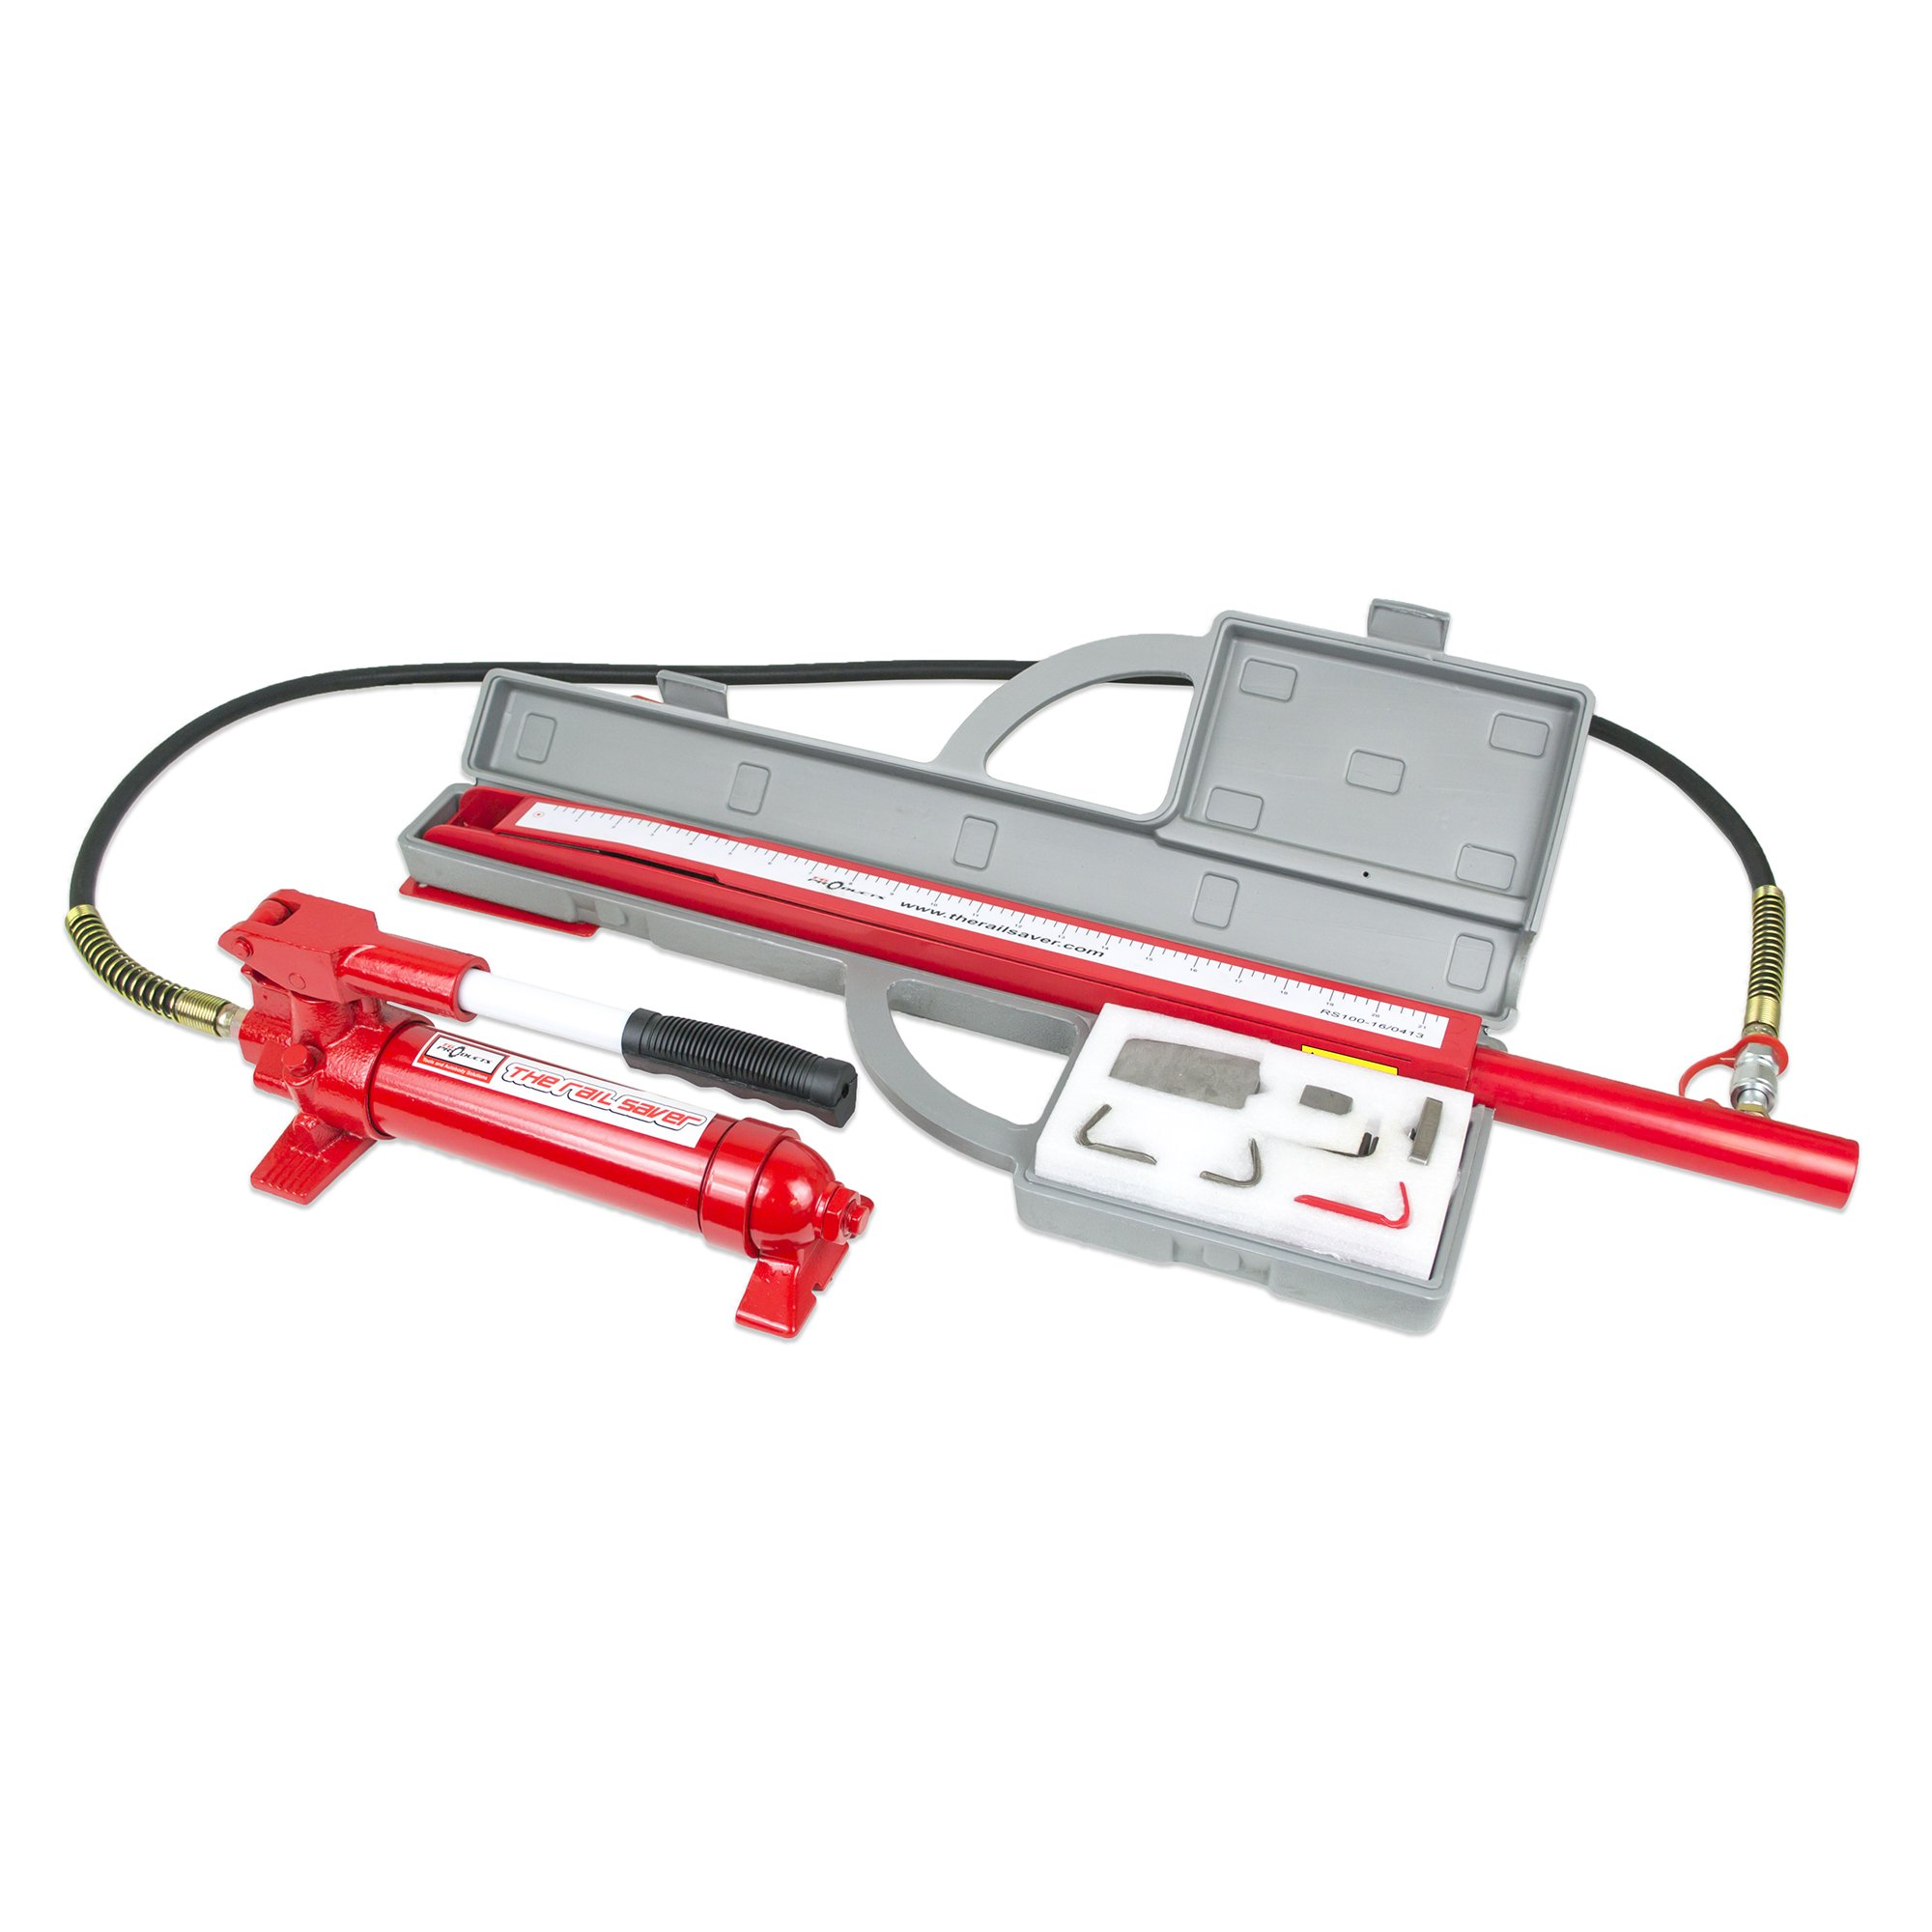 TG Products The Rail Saver Repair System, Accessory Kit, Ram, Case and Wall Bracket (with Pump)